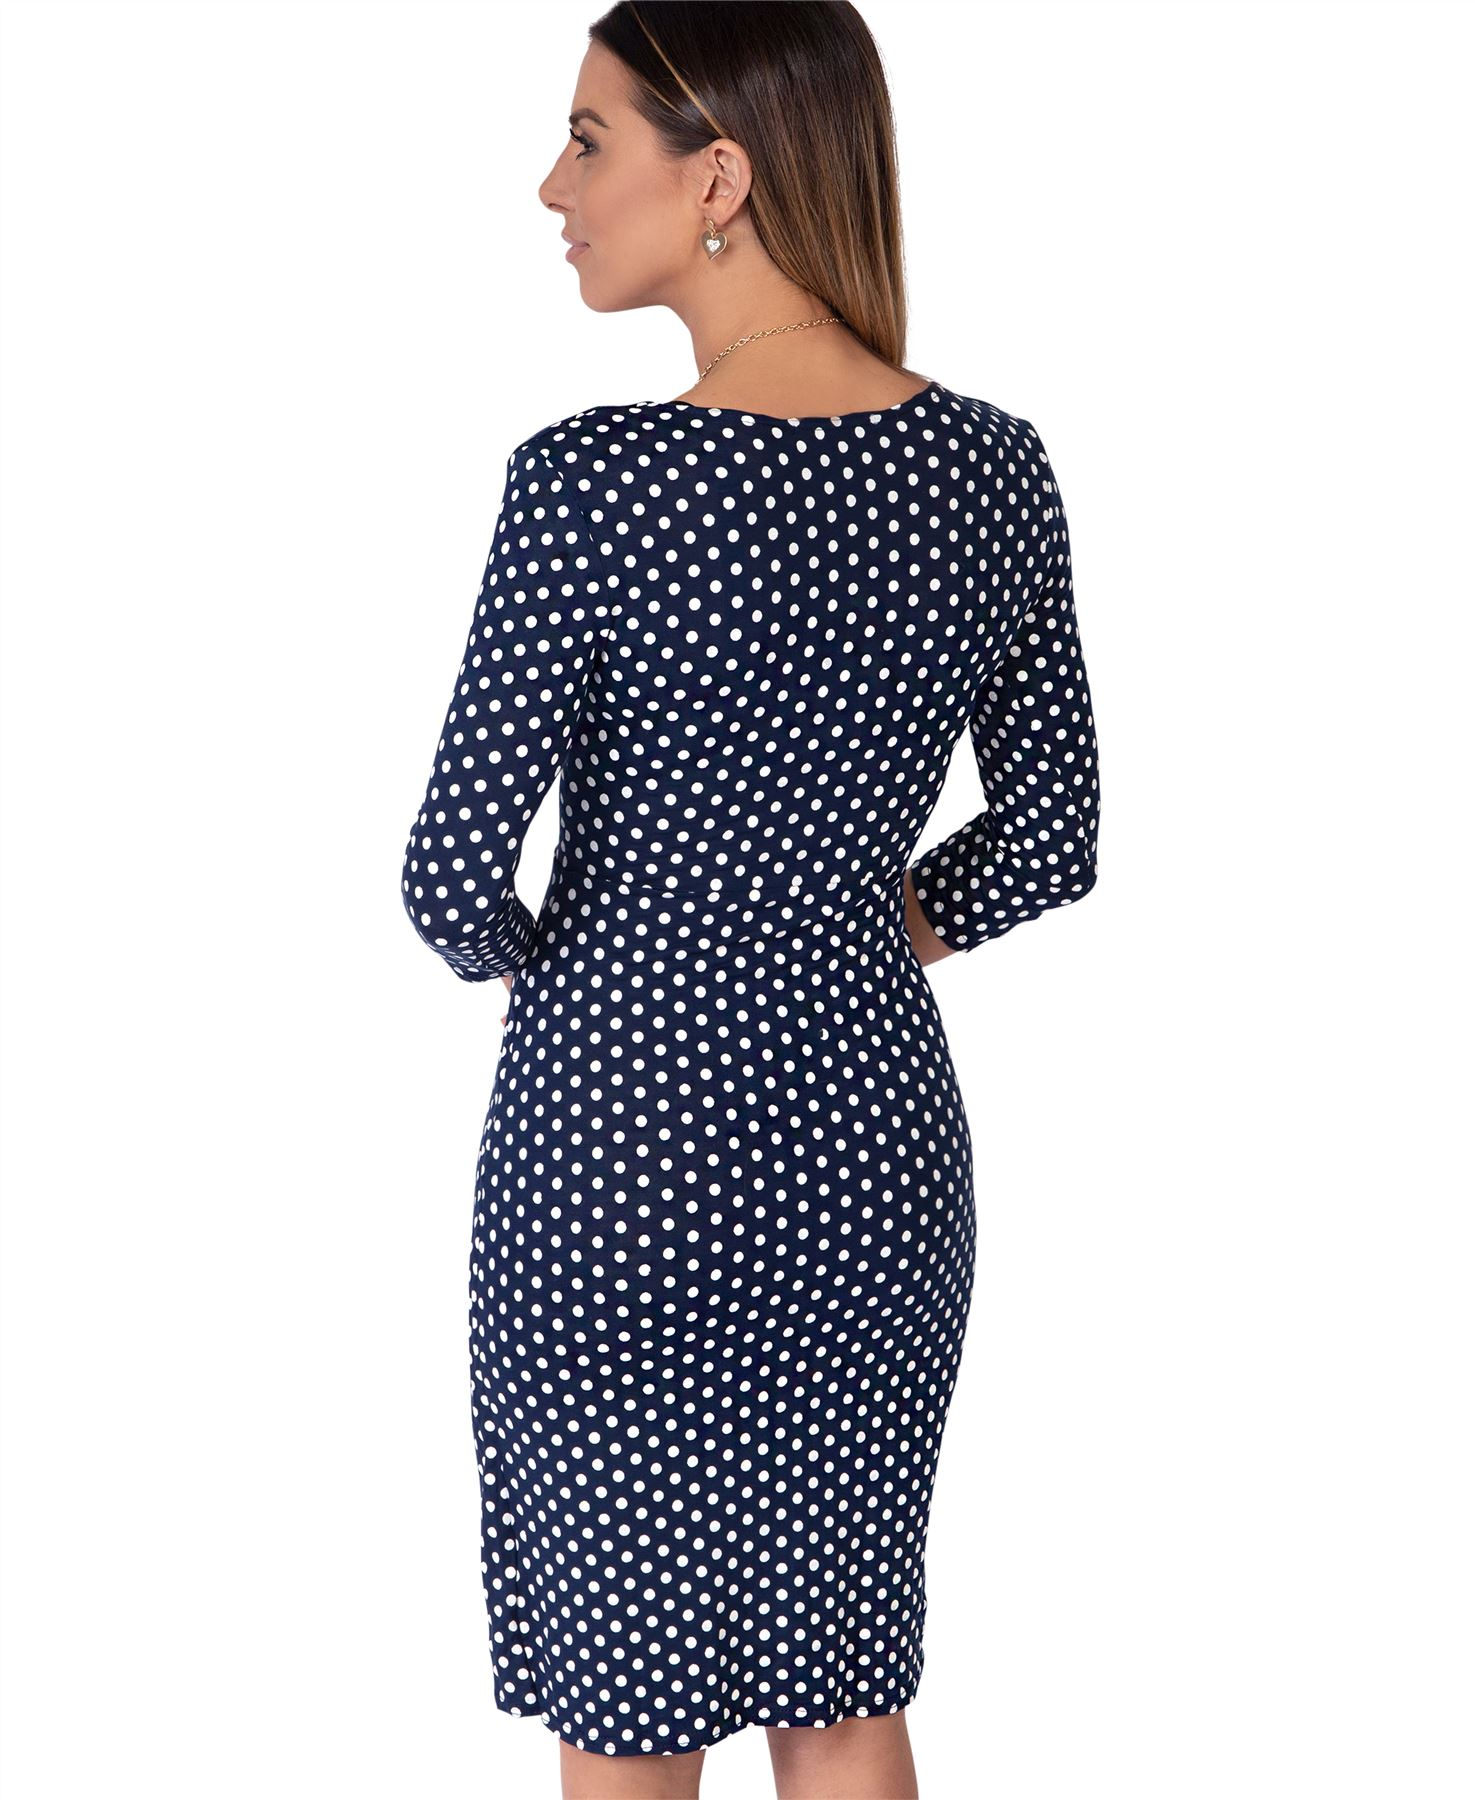 Womens-Polka-Dot-Dress-Pleated-Skirt-Wrap-Front-Mini-V-Neck-Top-Swing thumbnail 25